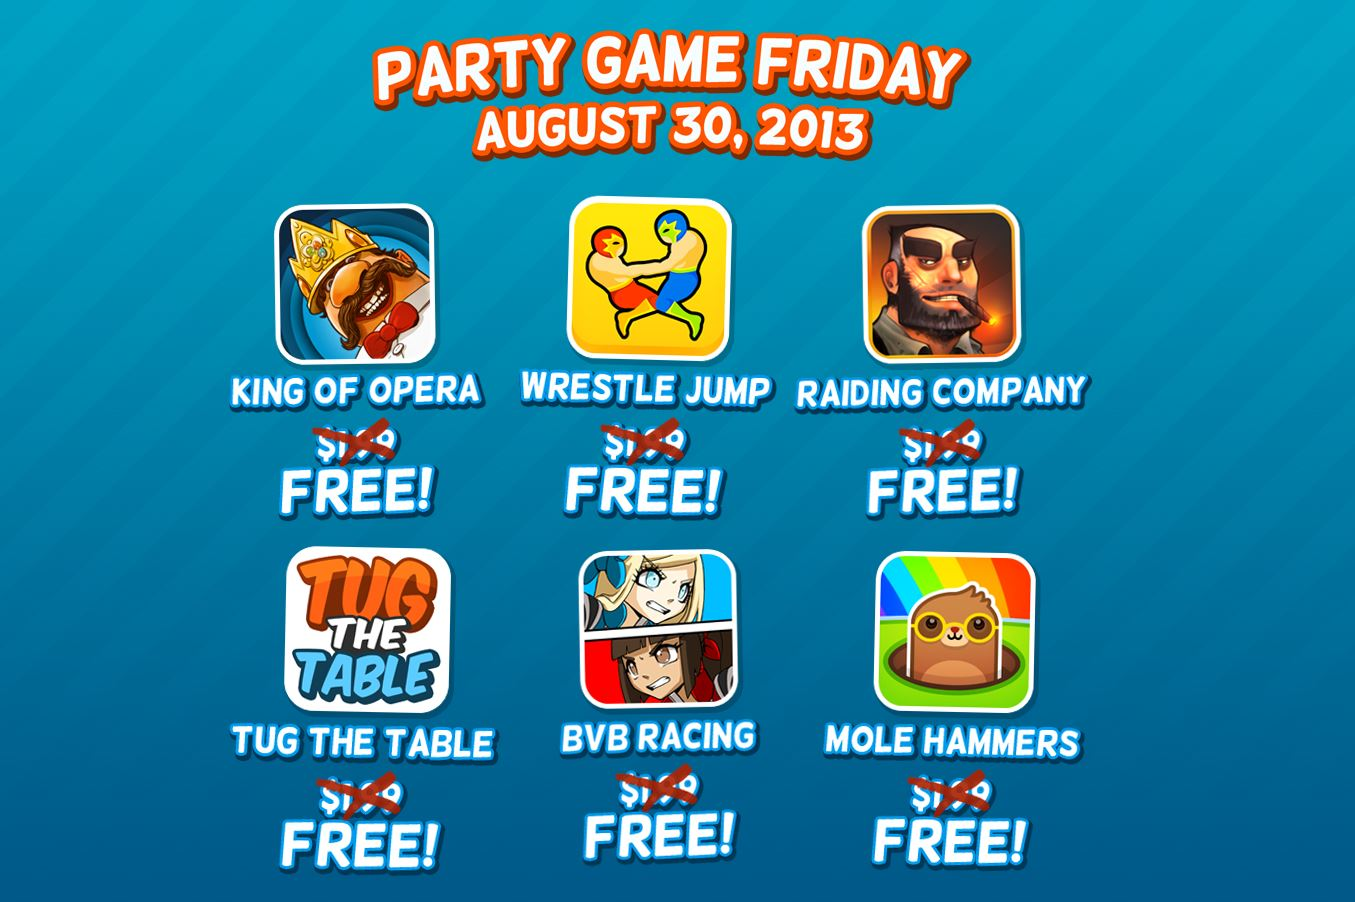 Six wacky multiplayer games are available for free for today only as part of Party Game Friday